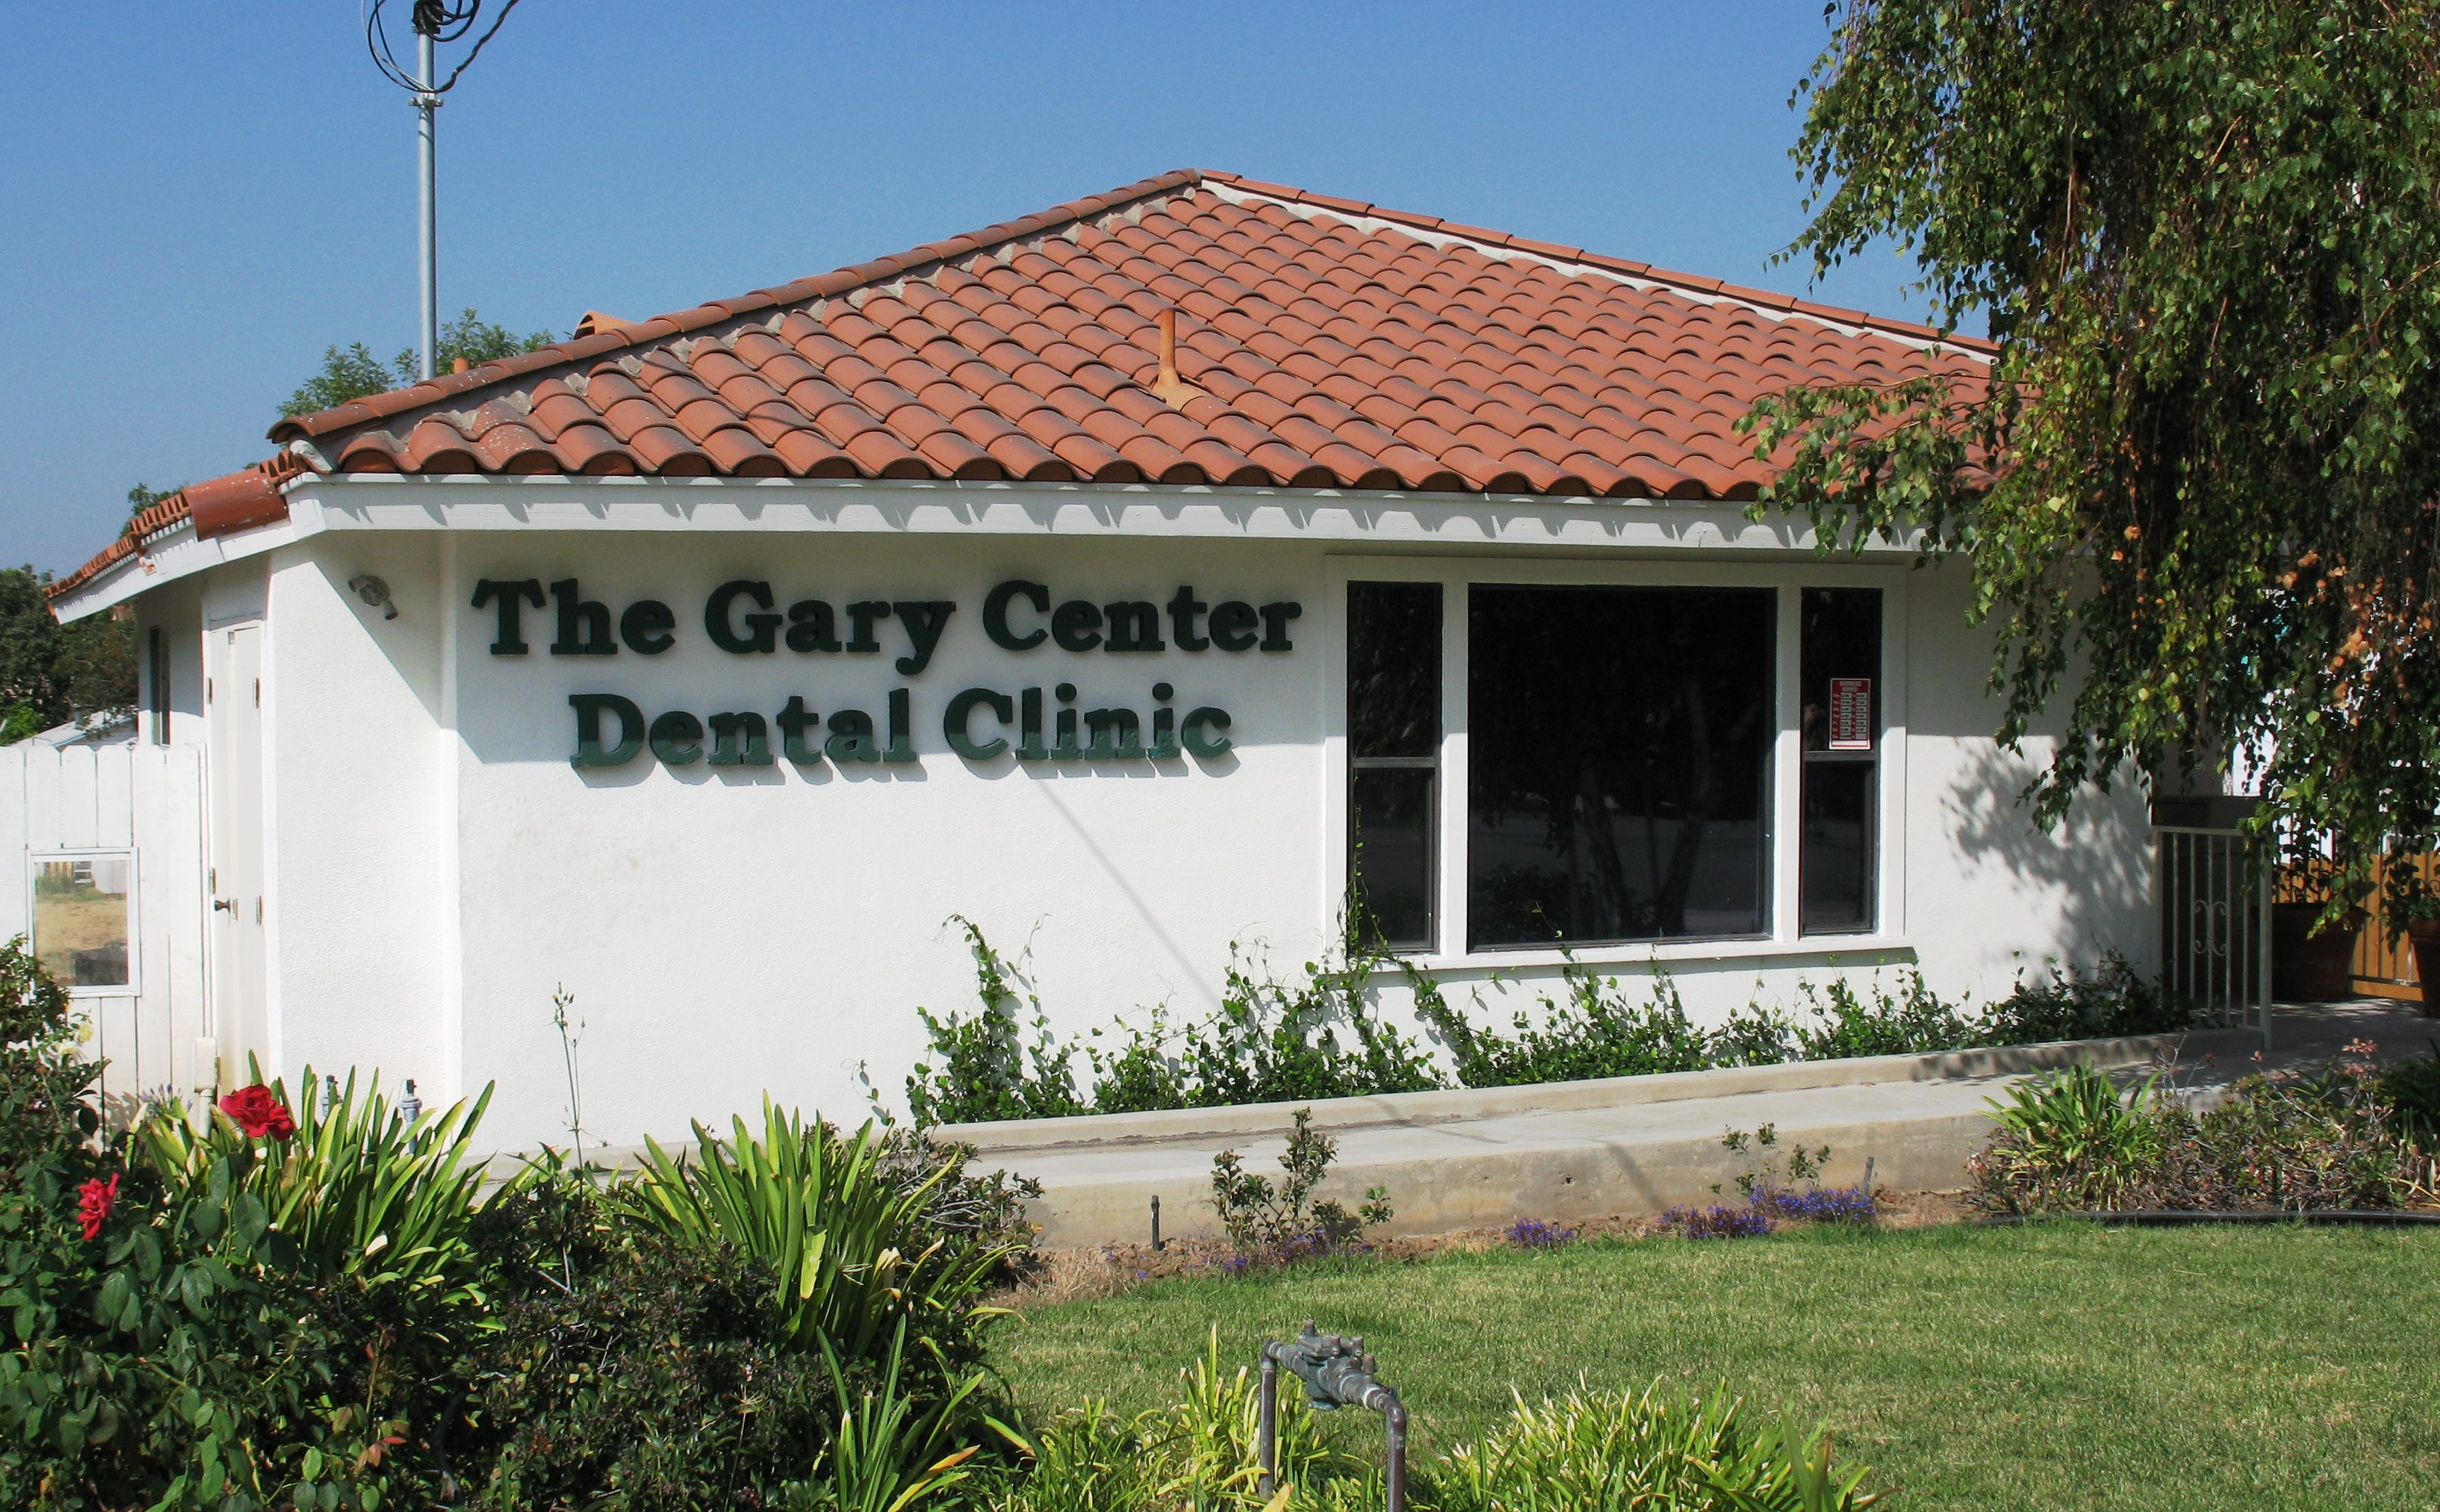 The Glary Center Dental Clinic Image